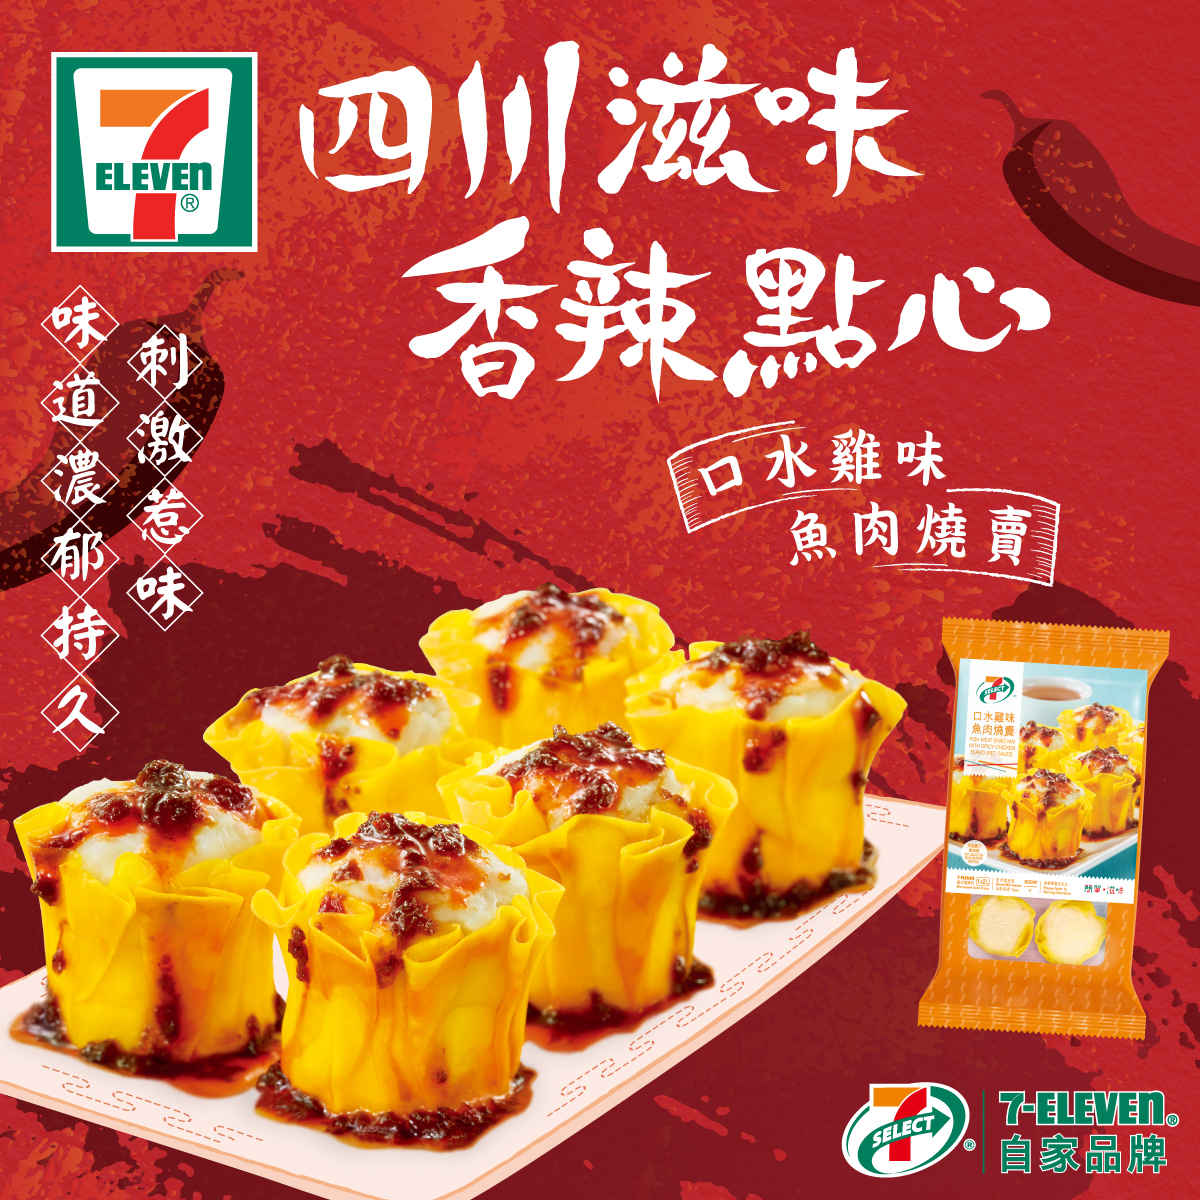 7-Elevens Own Brand 7-SELECT New Product Update - Introducing Fish Meat Shao Mai with Spicy Chicken Flavoured Sauce and the Bee Bun with Red Bean Paste